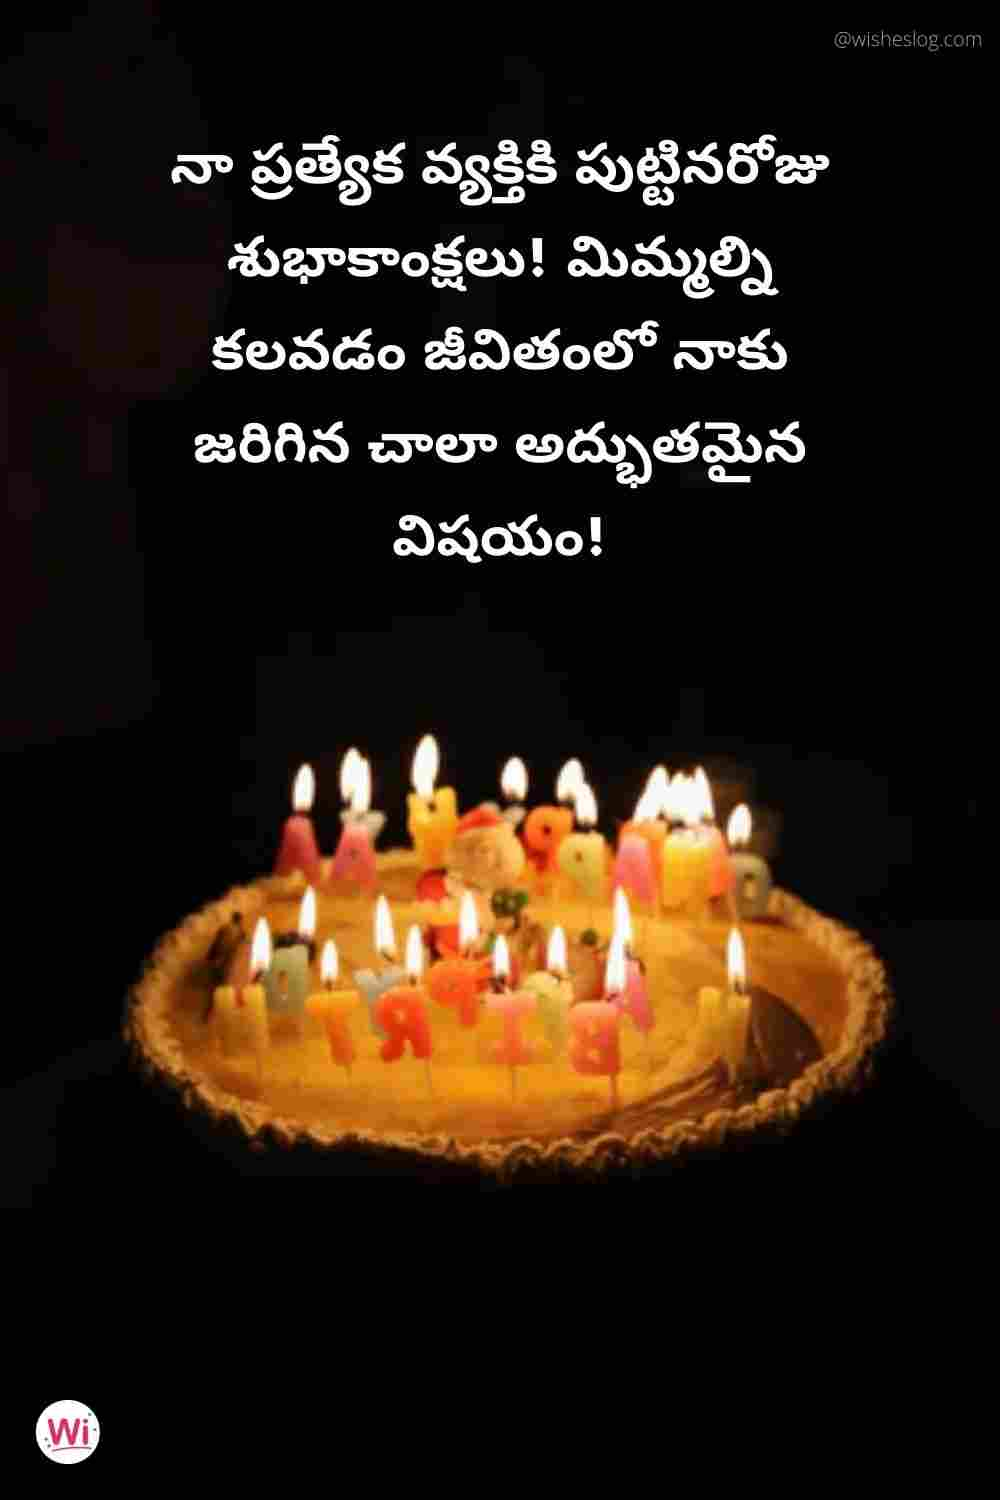 lover birthday wishes in telugu